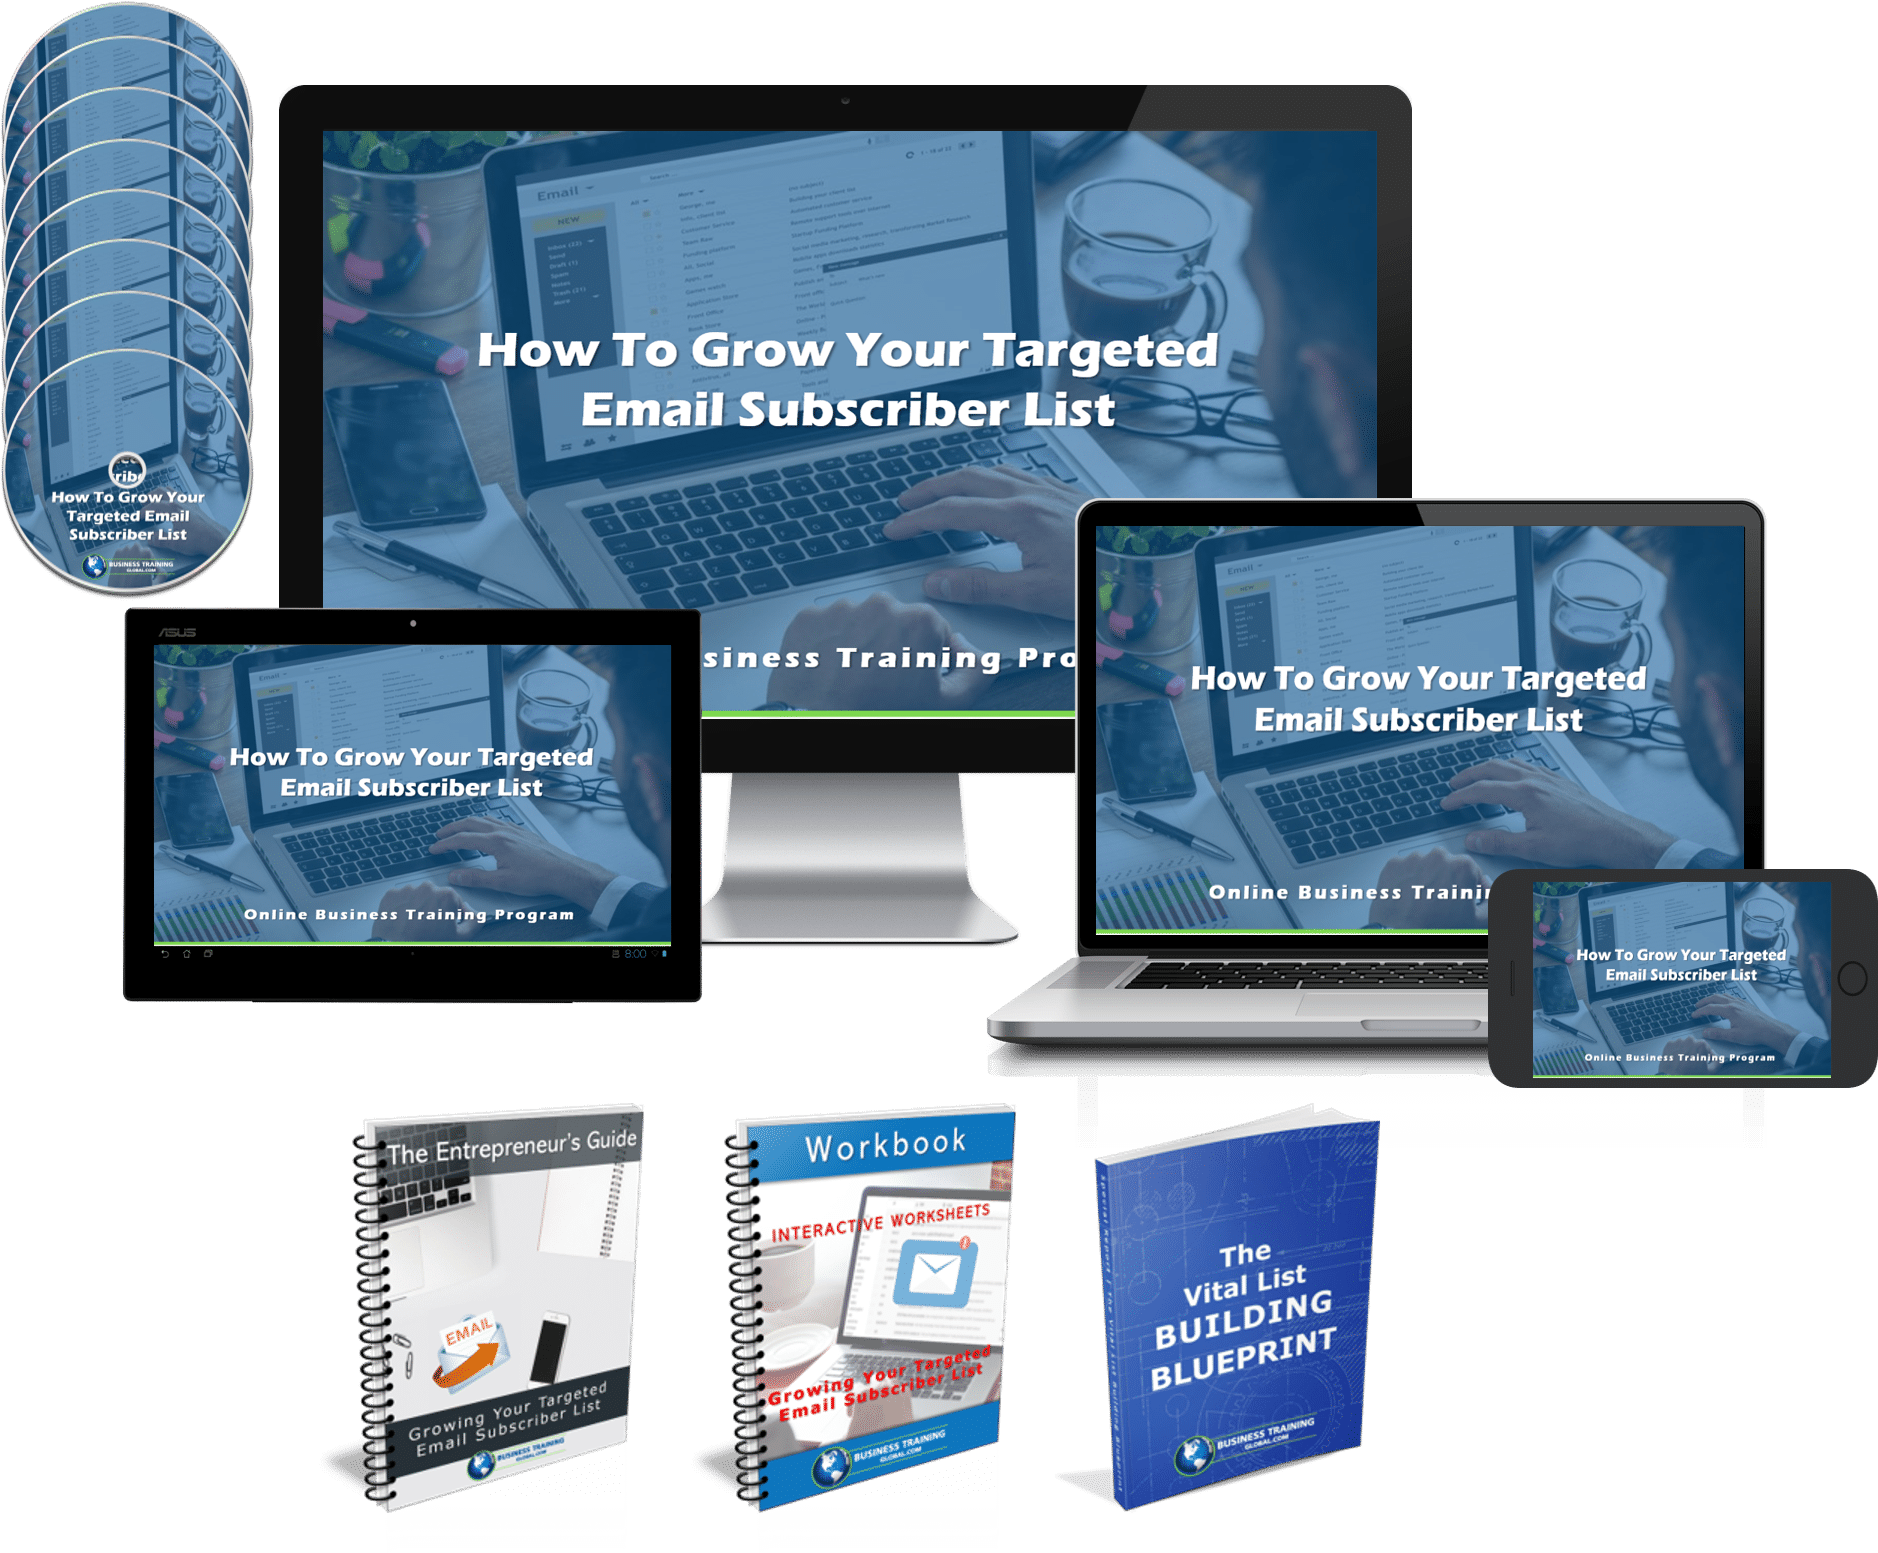 image collage of the Program How to Grow Your Targeted Email Subscriber List